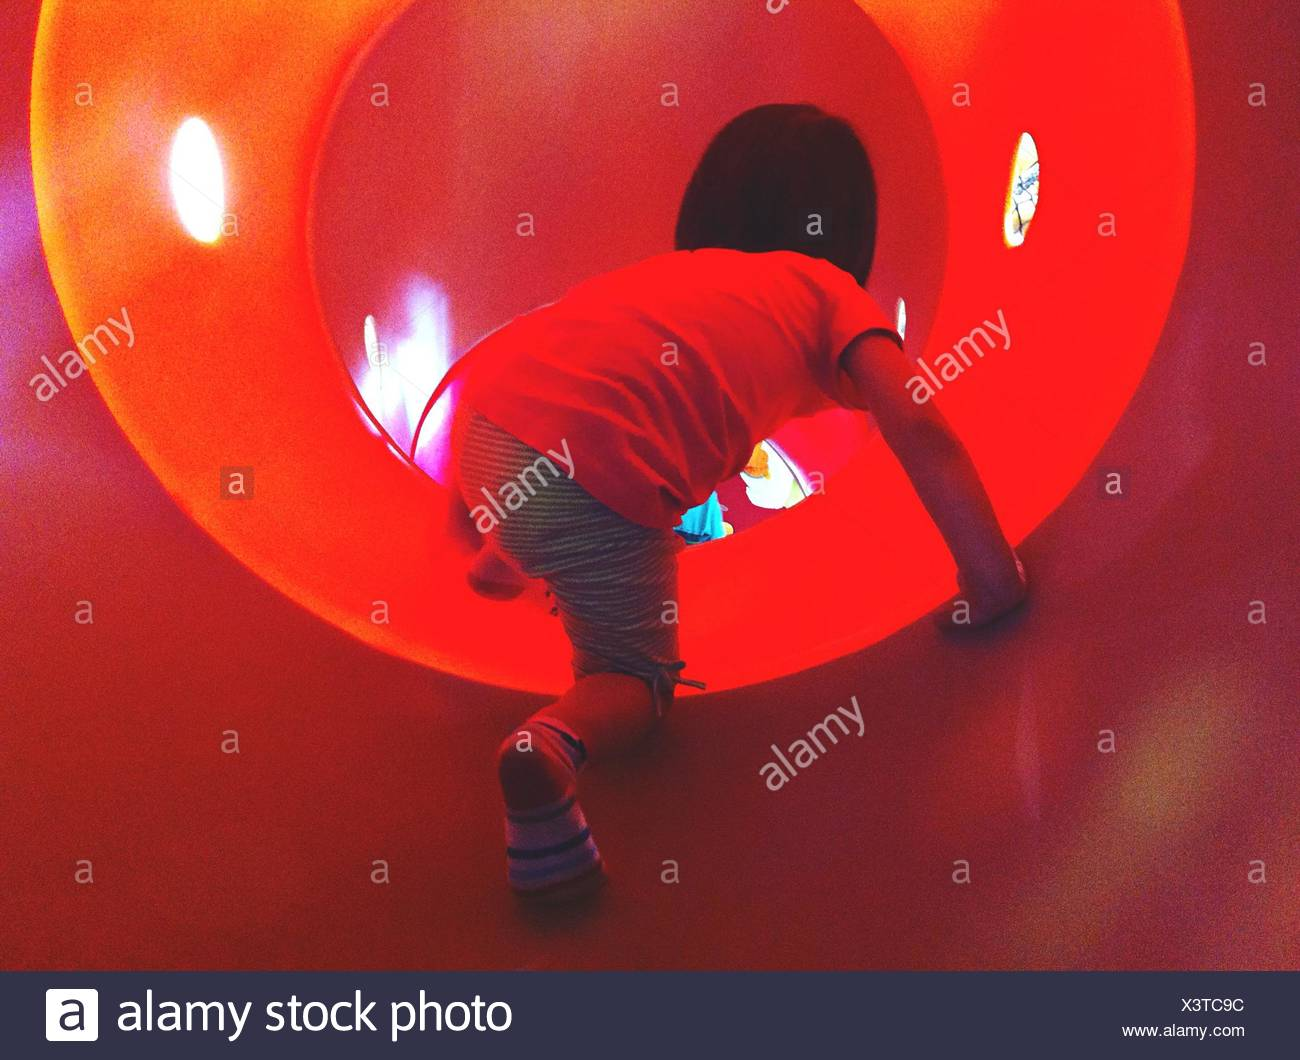 Boy In Tunnel At Playground - Stock Image